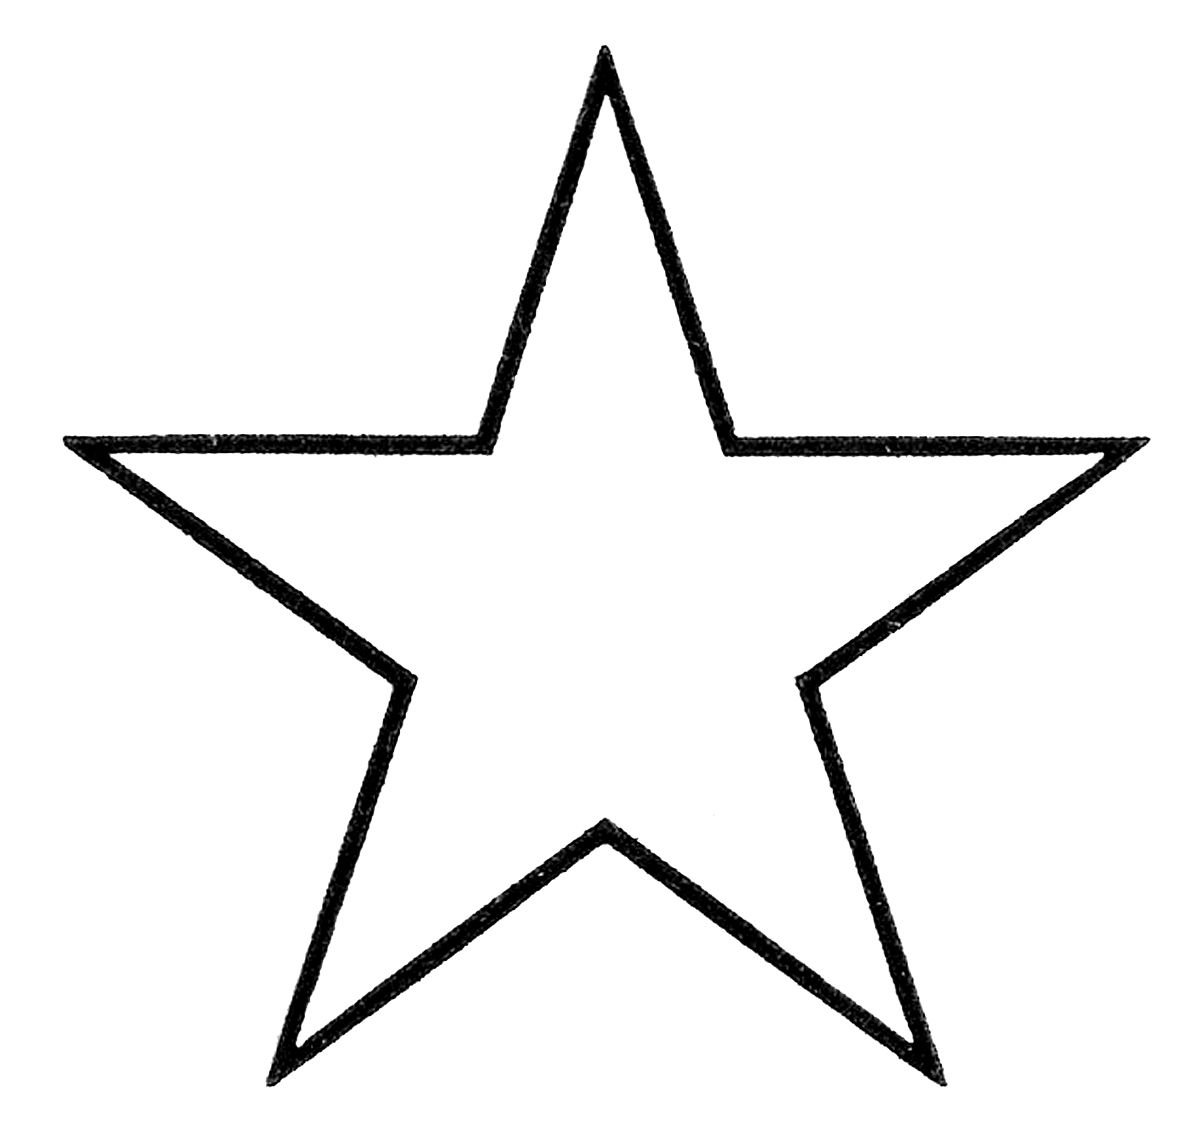 free star clipart images for teachers students web designers crafters etc to use in projects printables reports  [ 1200 x 1145 Pixel ]